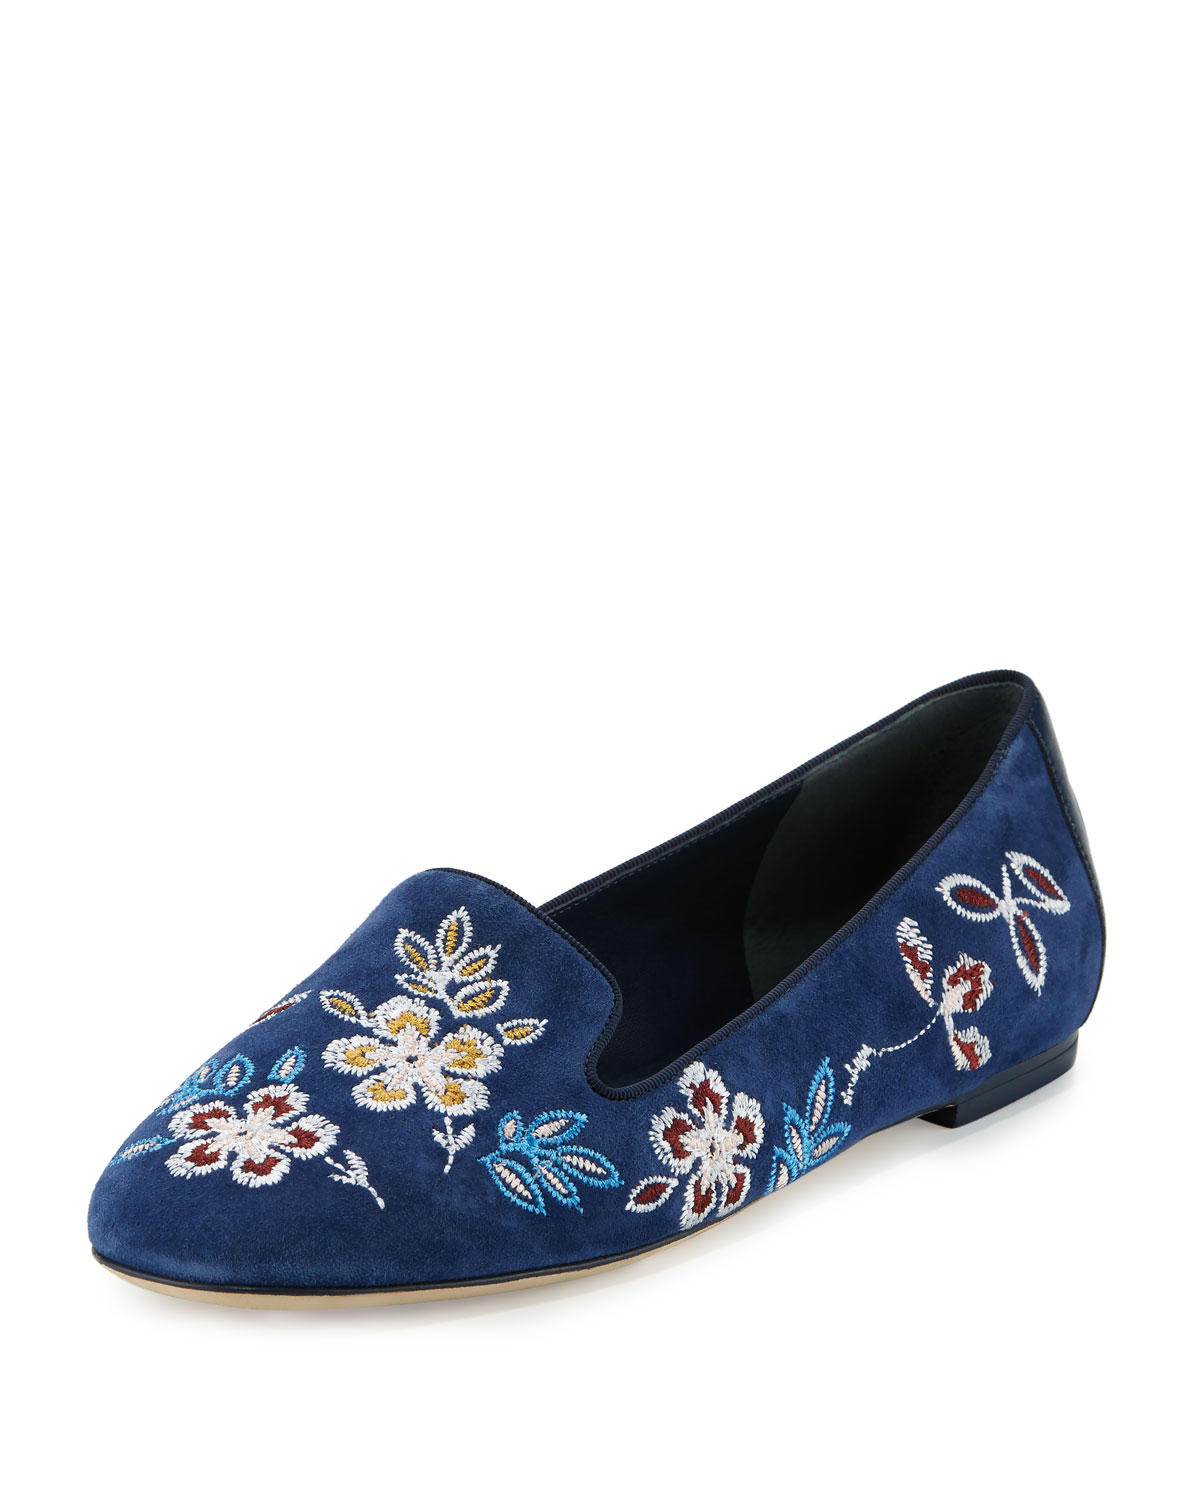 08a73c54257 Tory Burch Embroidered Suede Smoking Slipper